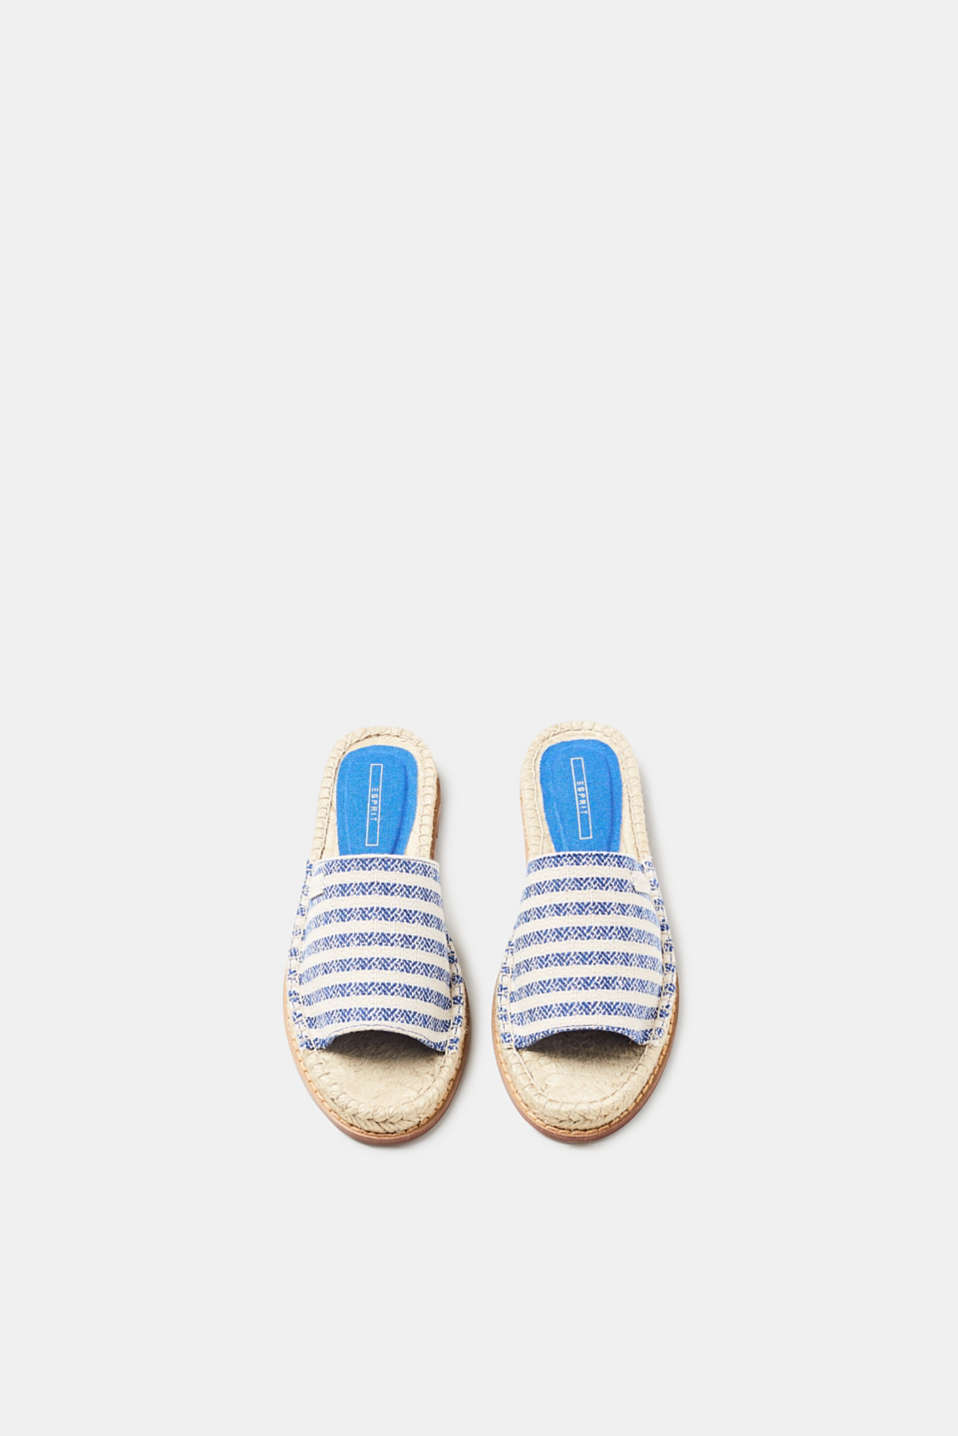 Esprit - Flat mules with a bast trim